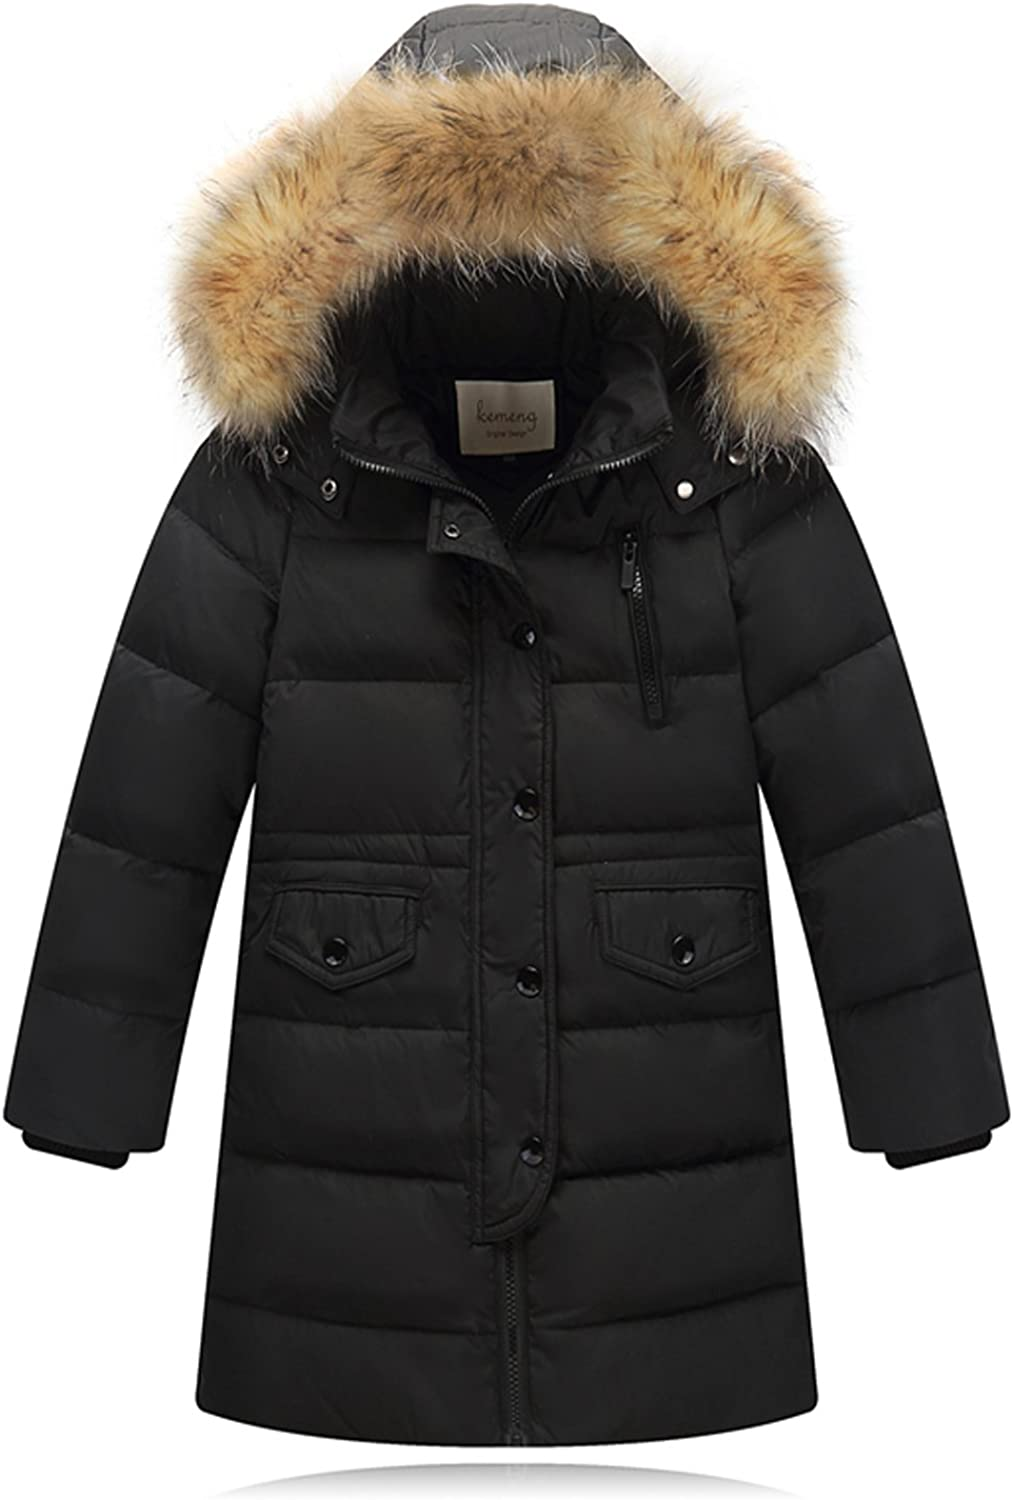 Winter Girls Kids Padded Quilted Warm Coat Jackets Puffer Fur Hooded Long Parka